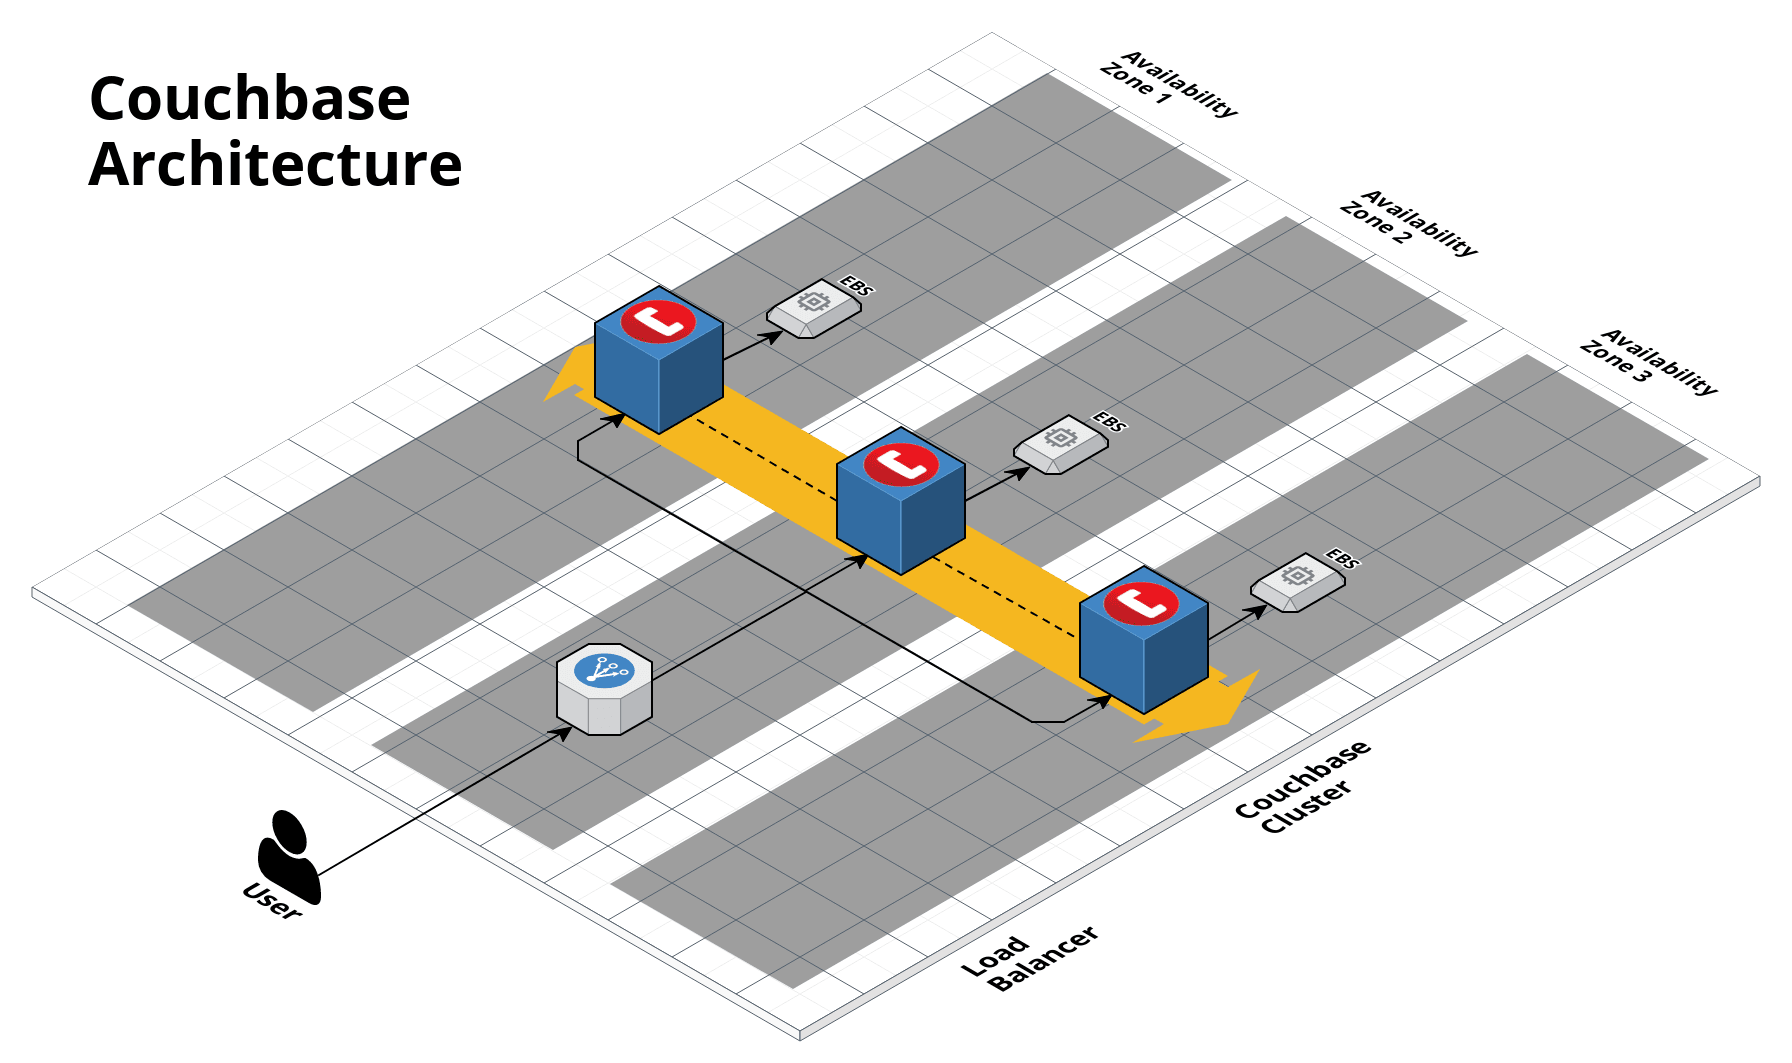 Couchbase single-cluster architecture